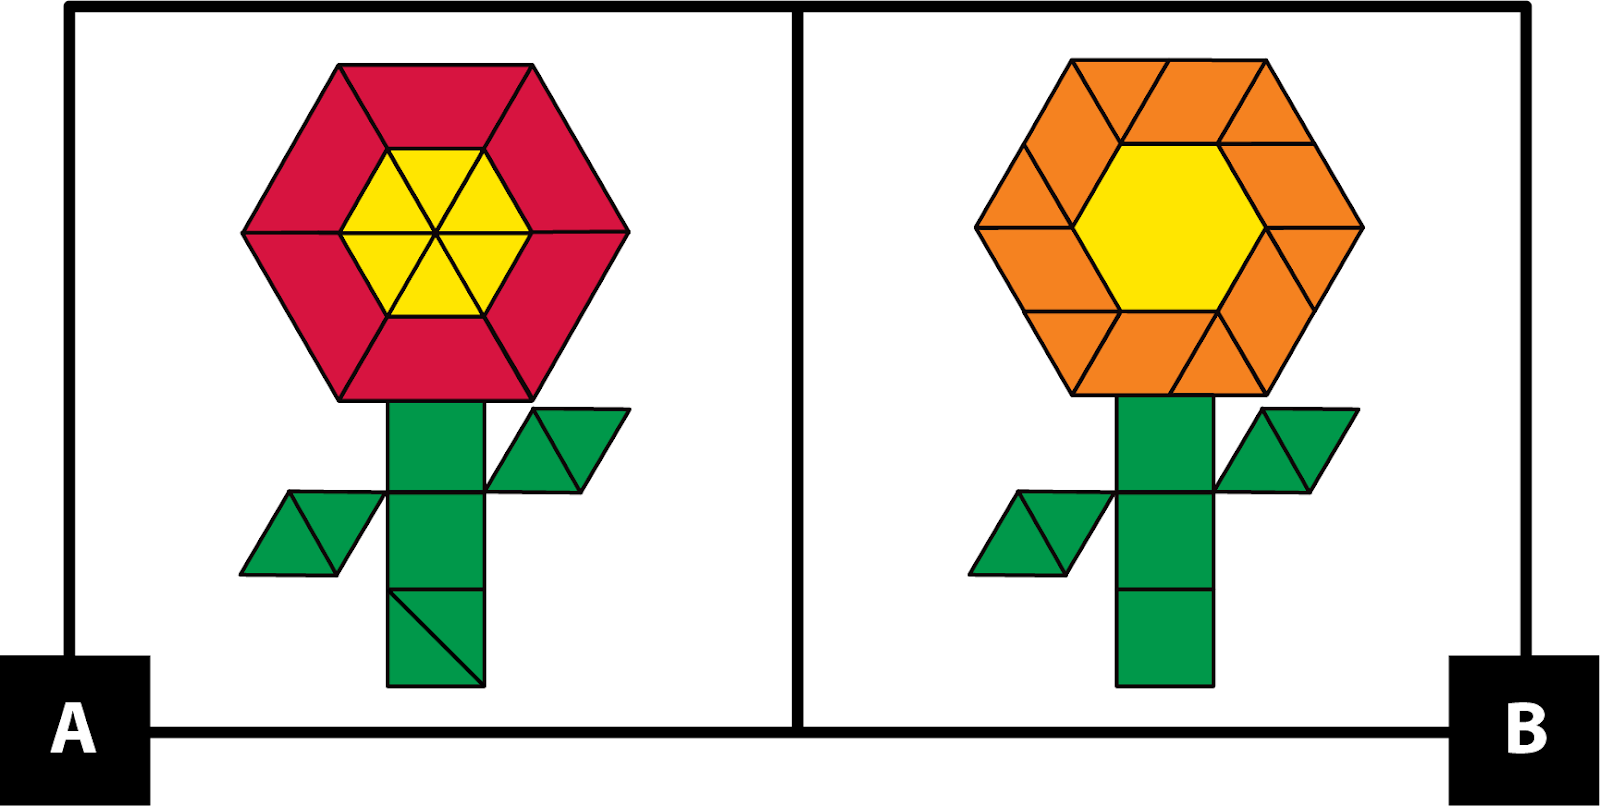 A. shows a flower made from pattern blocks. The petals are 6 red trapezoids. The center is 6 yellow triangles. The stem is a stack of 3 green squares. 1 of the squares is made with 2 green triangles. The leaves are 2 green triangles each. B. shows a flower made from pattern blocks. The petals are 6 orange rhombuses and 6 orange triangles. The center is a yellow hexagon. The stem is a stack of 3 green squares. The leaves are 2 green triangles each.